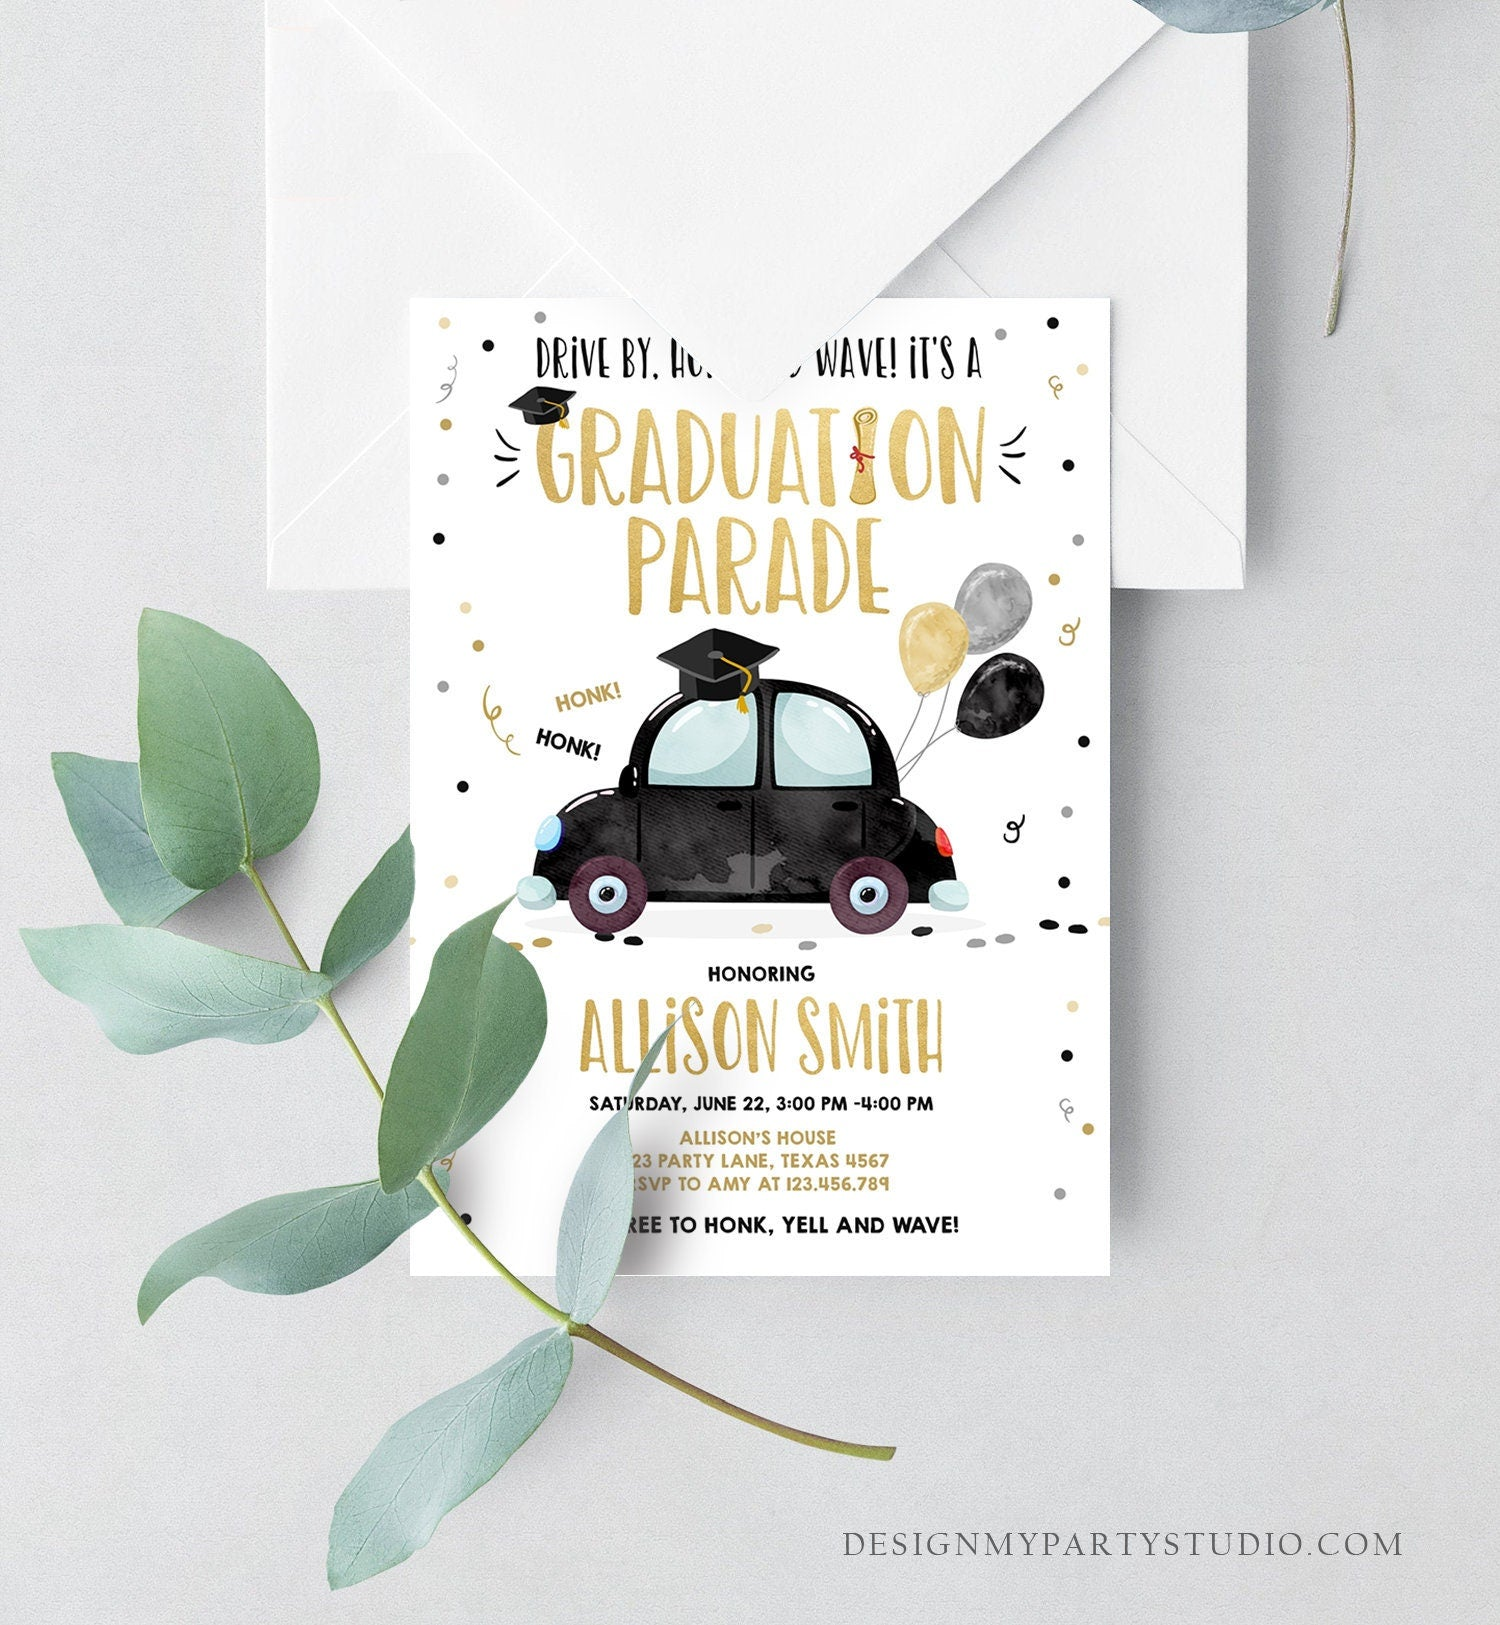 Editable Drive By Graduation Parade Invitation Drive Through Party Gold Black Quarantine Graduate 2020 High School Grad Download Corjl 0337